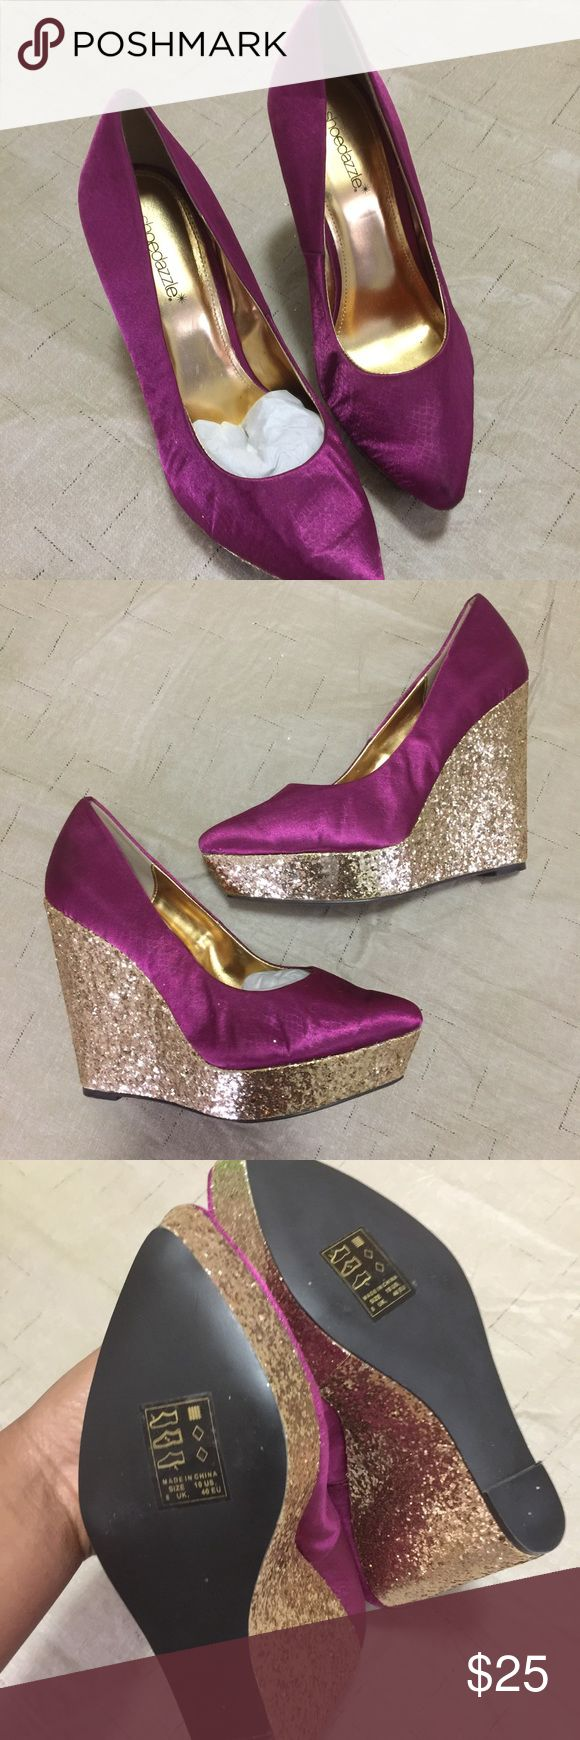 NWT Purple & Glitter Gold Wedges Size: 10 | Condition: NWT/new/never worn | Beautiful deep purple and sparkly wedges! Shoe Dazzle Shoes Wedges